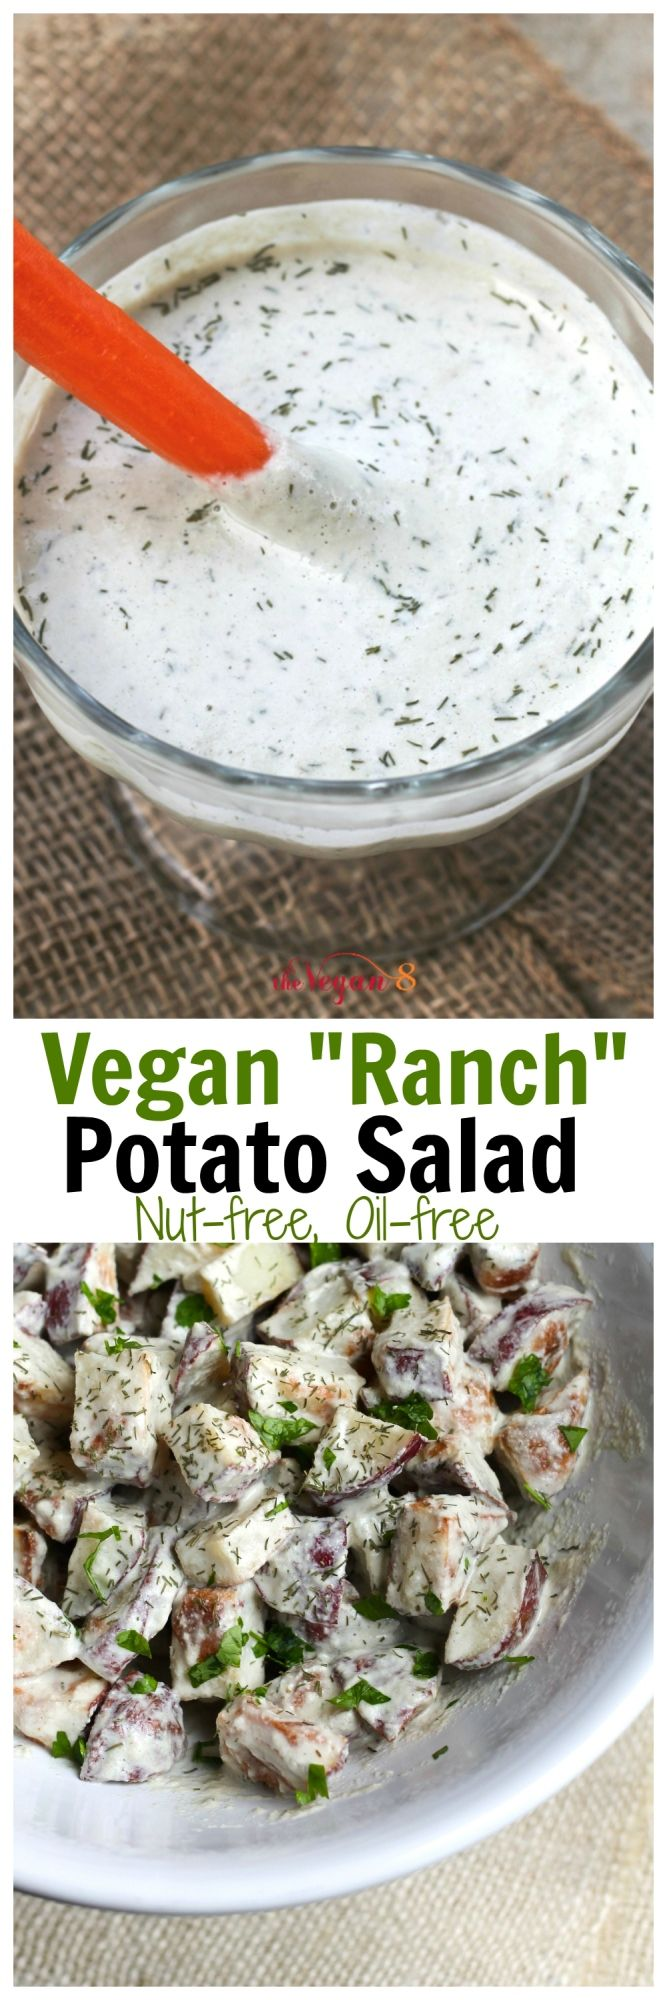 "Vegan ""Ranch"" Potato Salad that is oil-free, soy-free, gluten-free and only 8 ingredients! (+salt&water) and nut-free!"